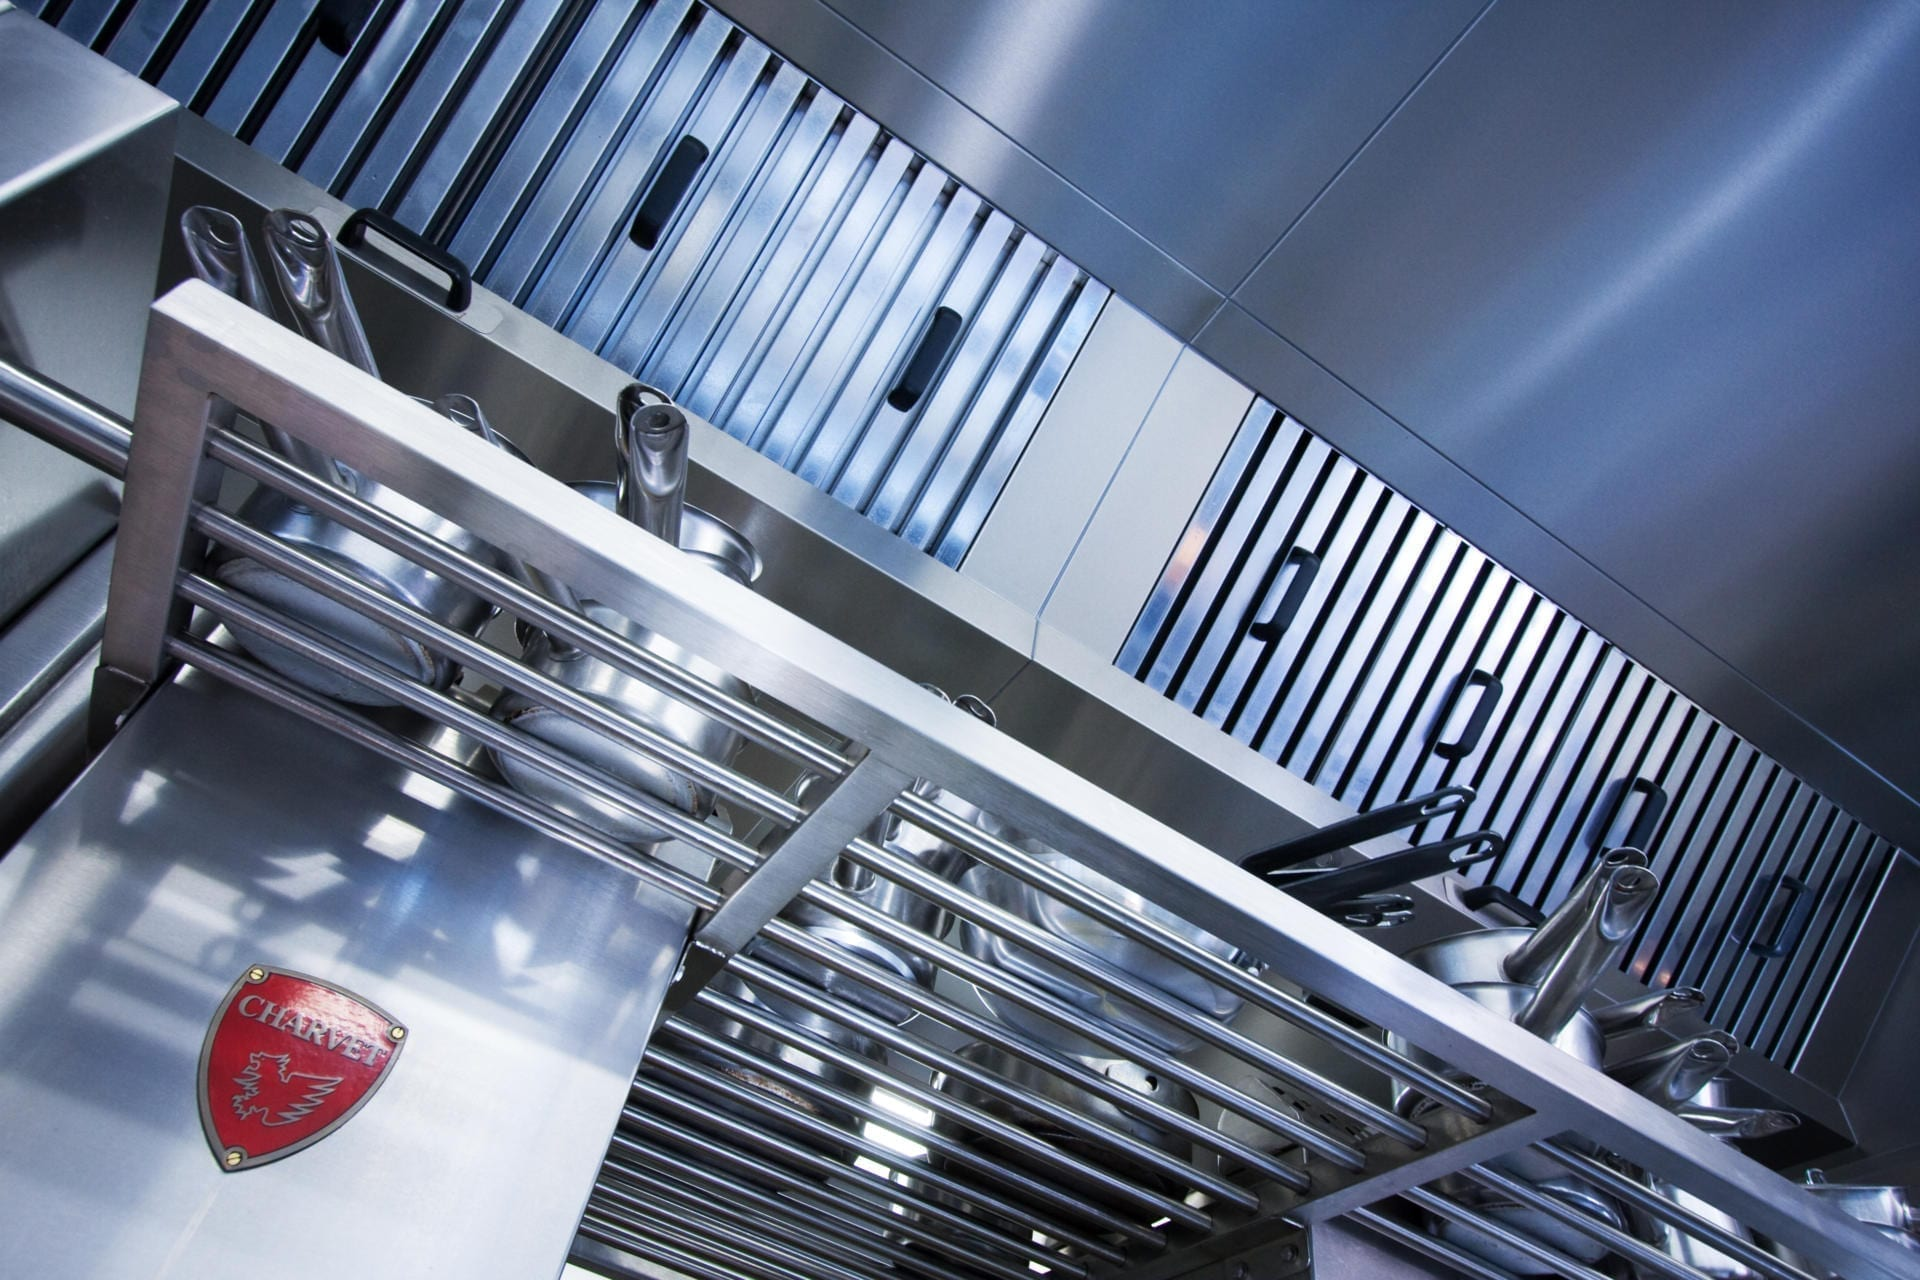 Ockenden-Manor-Hotel-Sussex-Restaurant-Kitchen-Fabrication-Stainless-Steel-Commercial-spacecatering_11